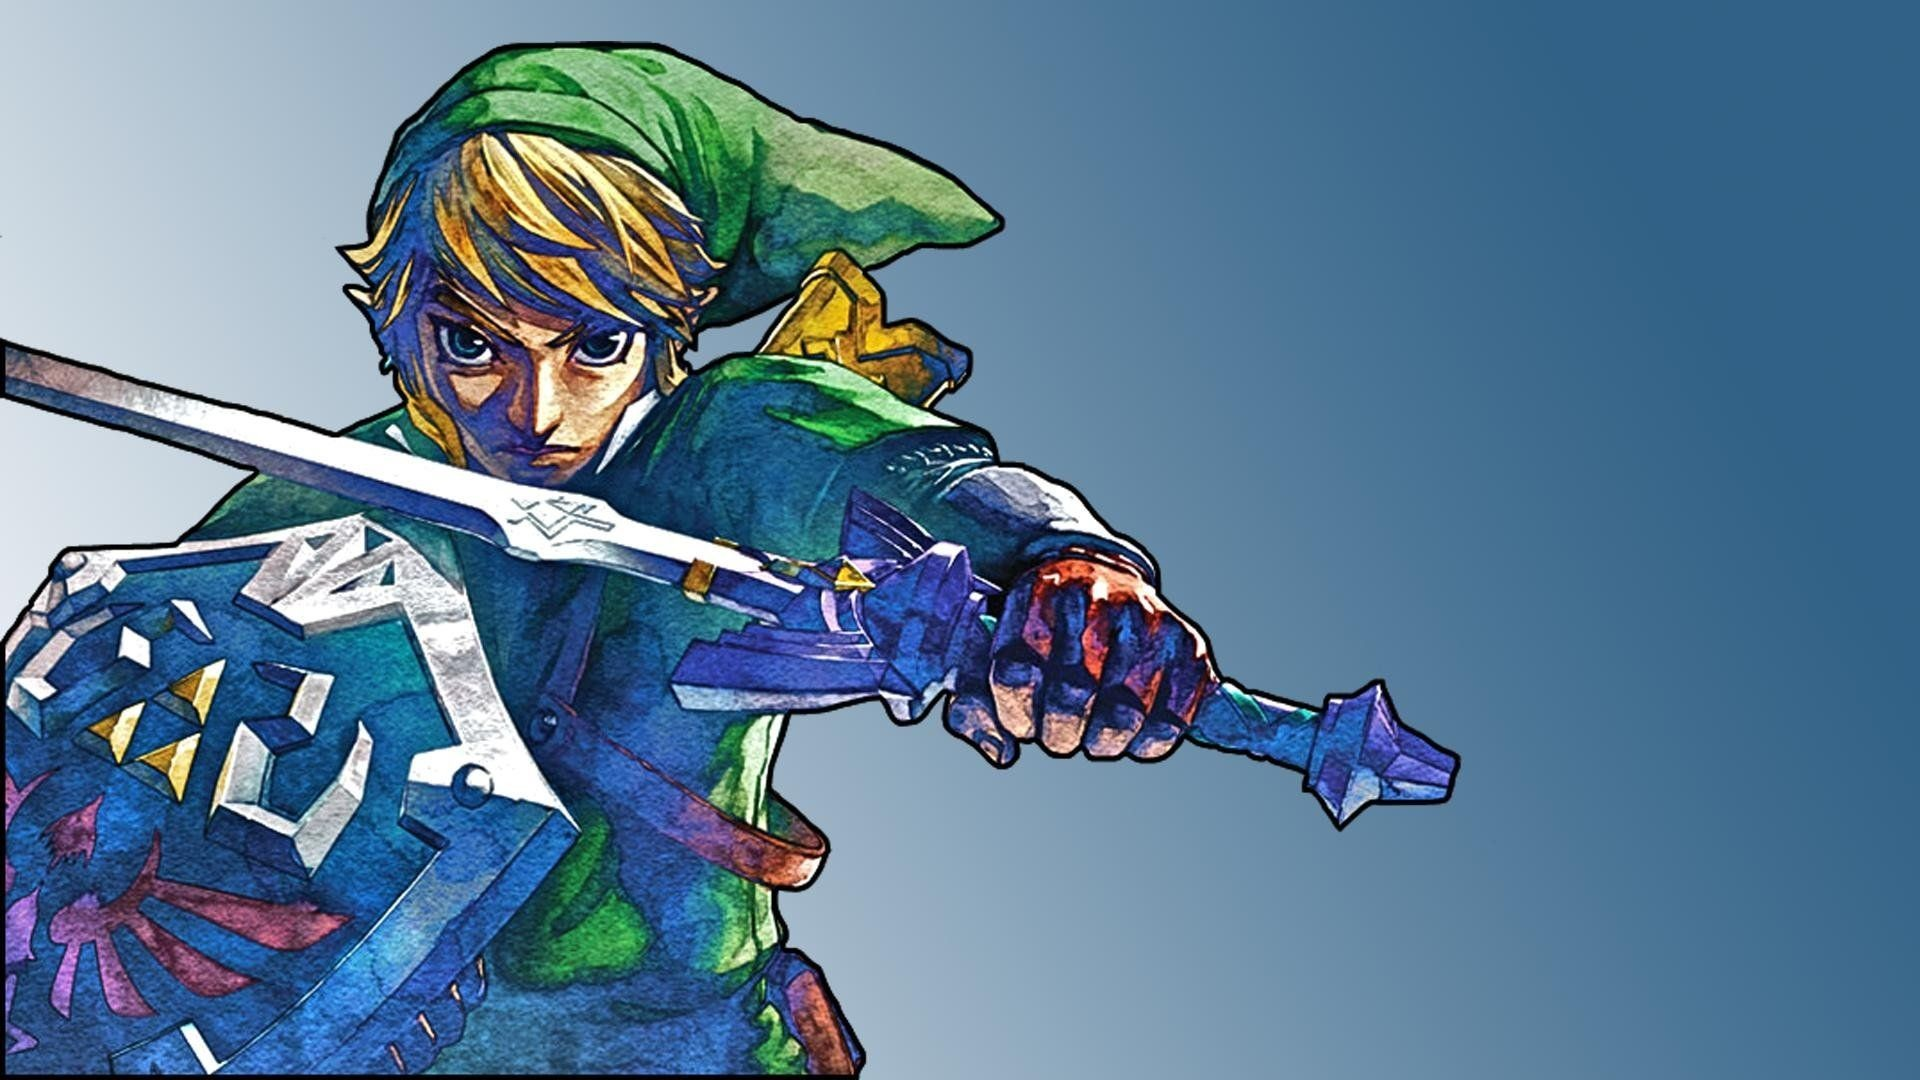 1920x1080  Zelda Wallpapers HD Wallpaper 1920×1080 Zelda Wallpapers Android  (43 Wallpapers) |